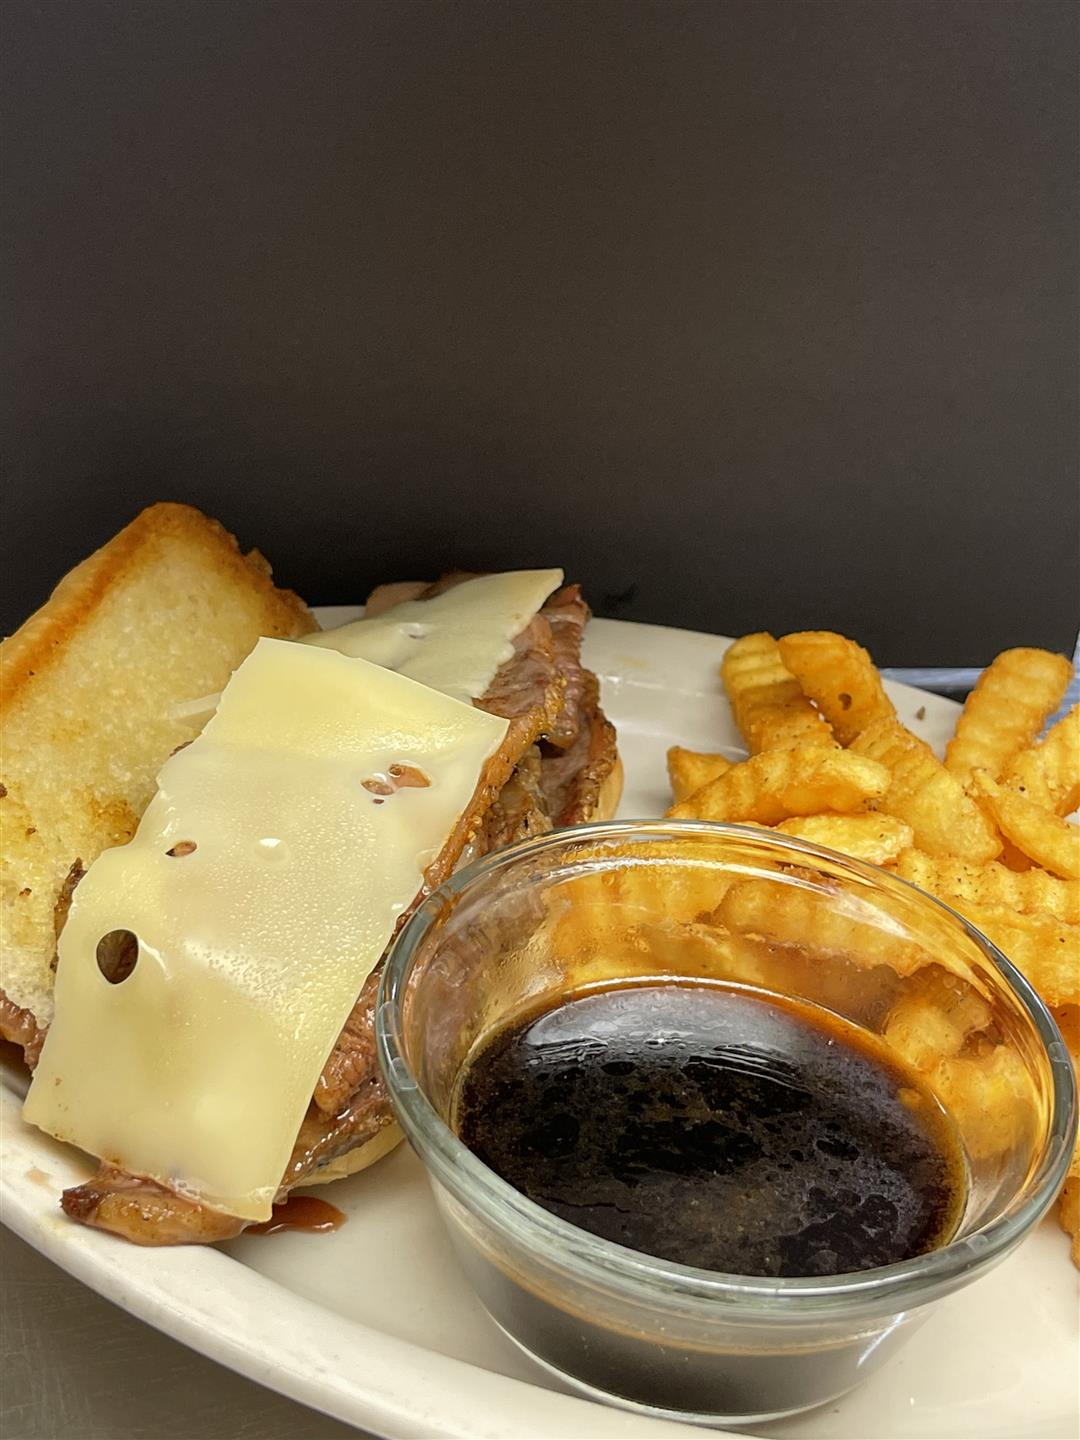 open faced chicken sandwich melt with a side of fries and dipping sauce